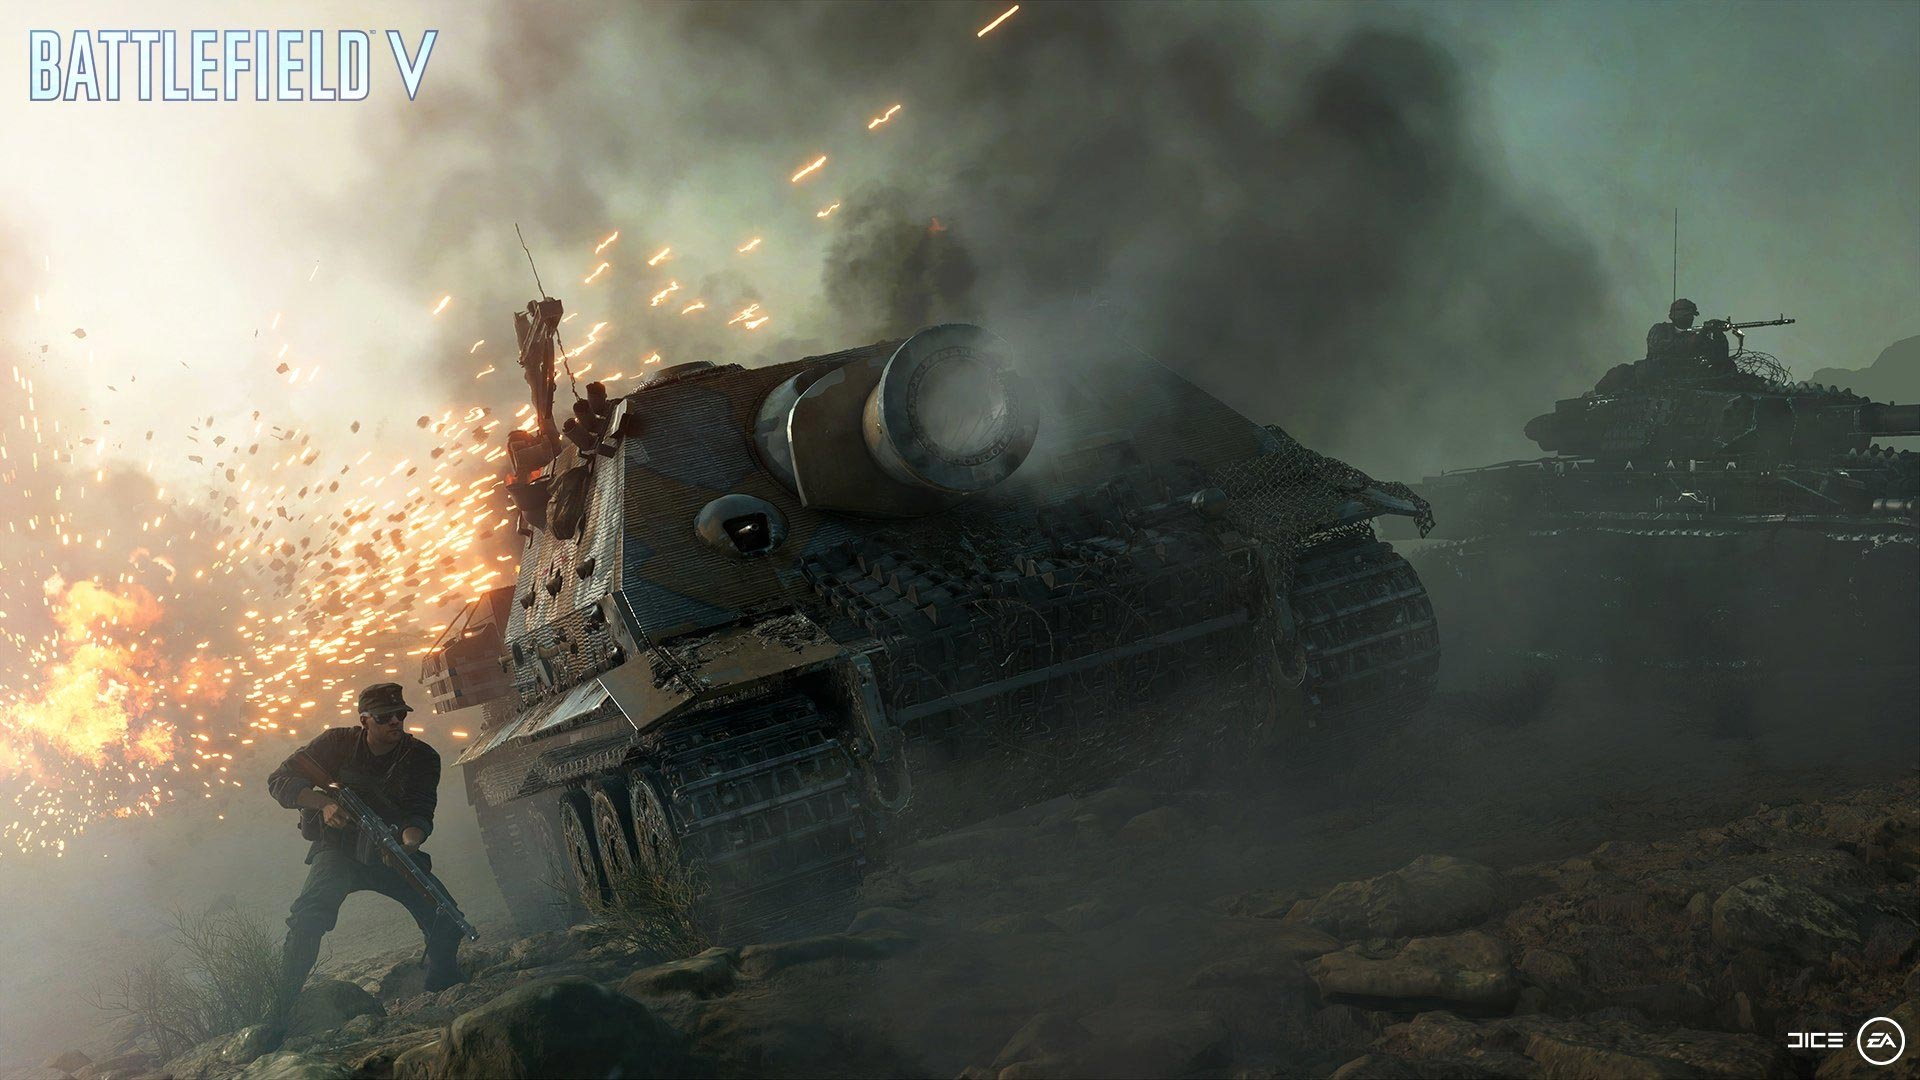 Battlefield 5: Tanks will also play a role in the Battle Royale mode.